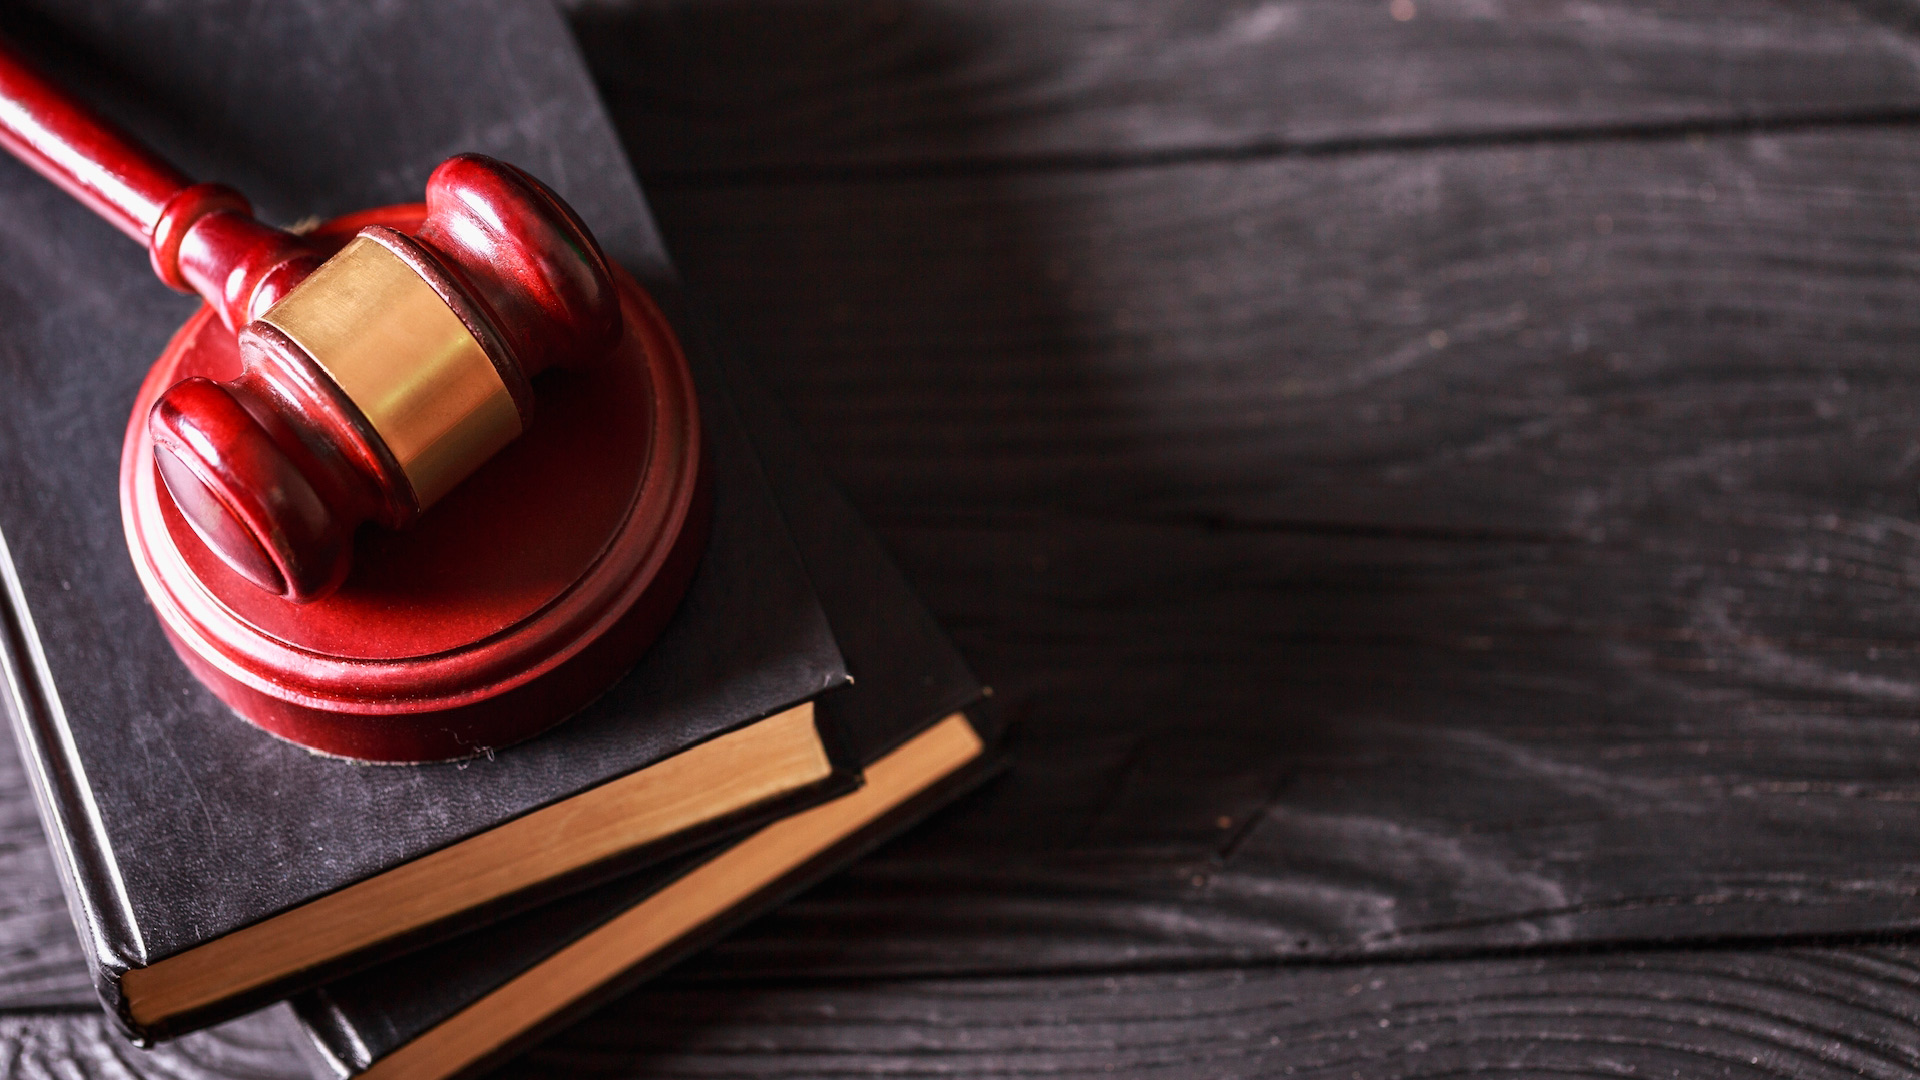 A gavel over books on a table